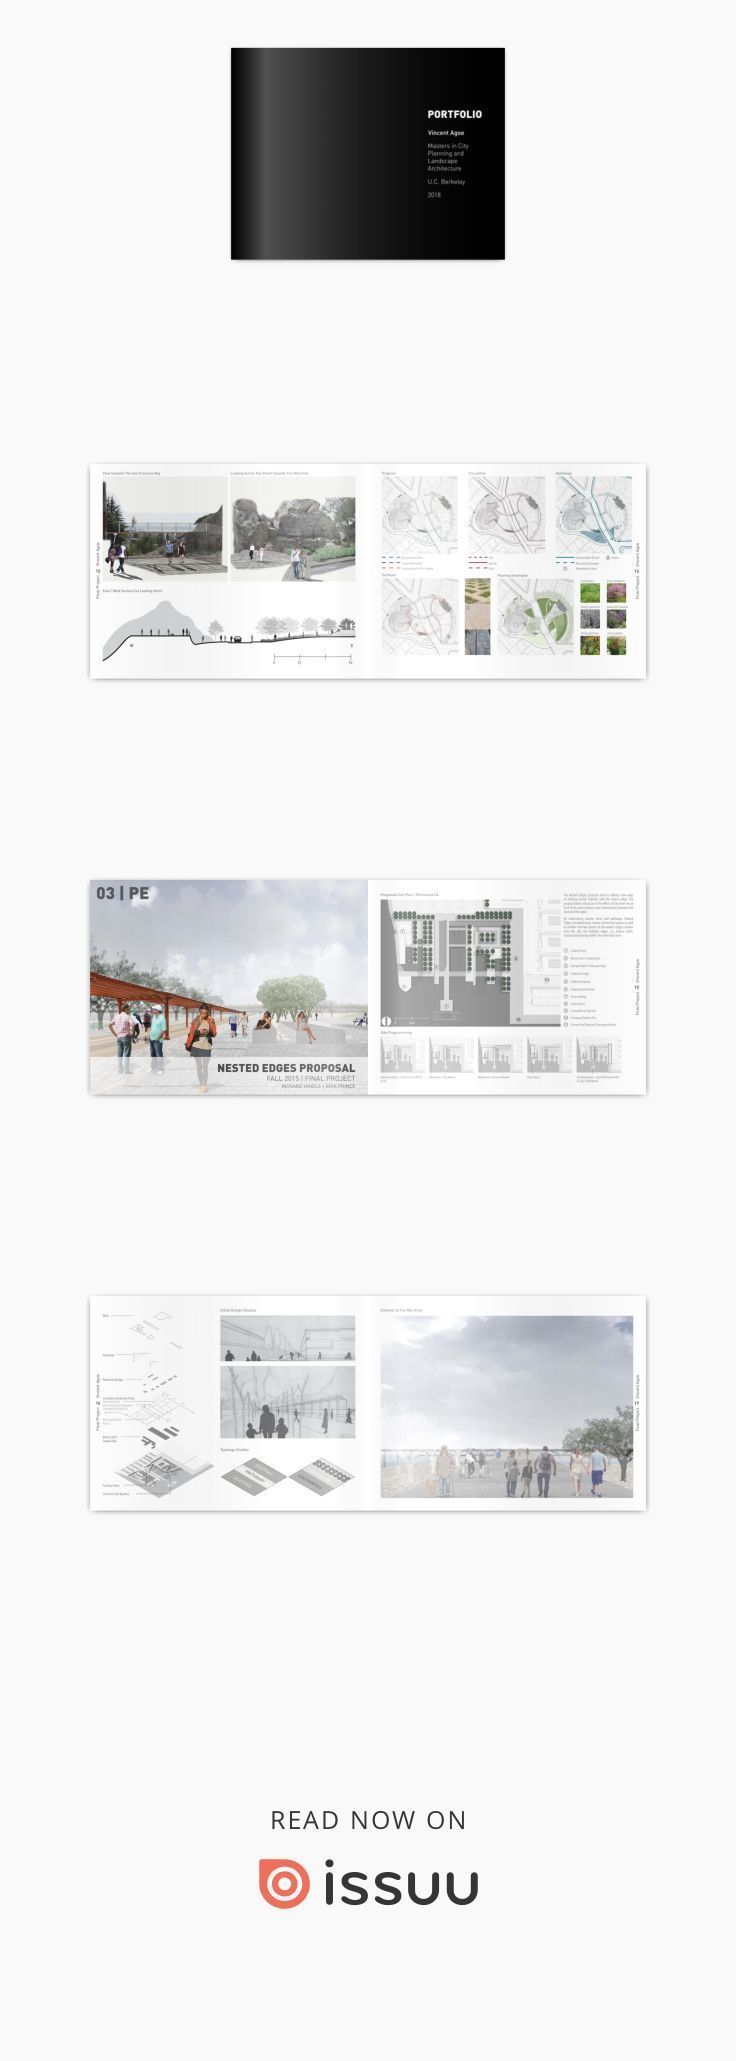 landscape architecture cover letter%0A Vincent Agoe  Portfolio The works presented in this portfolio highlight  final projects and process work